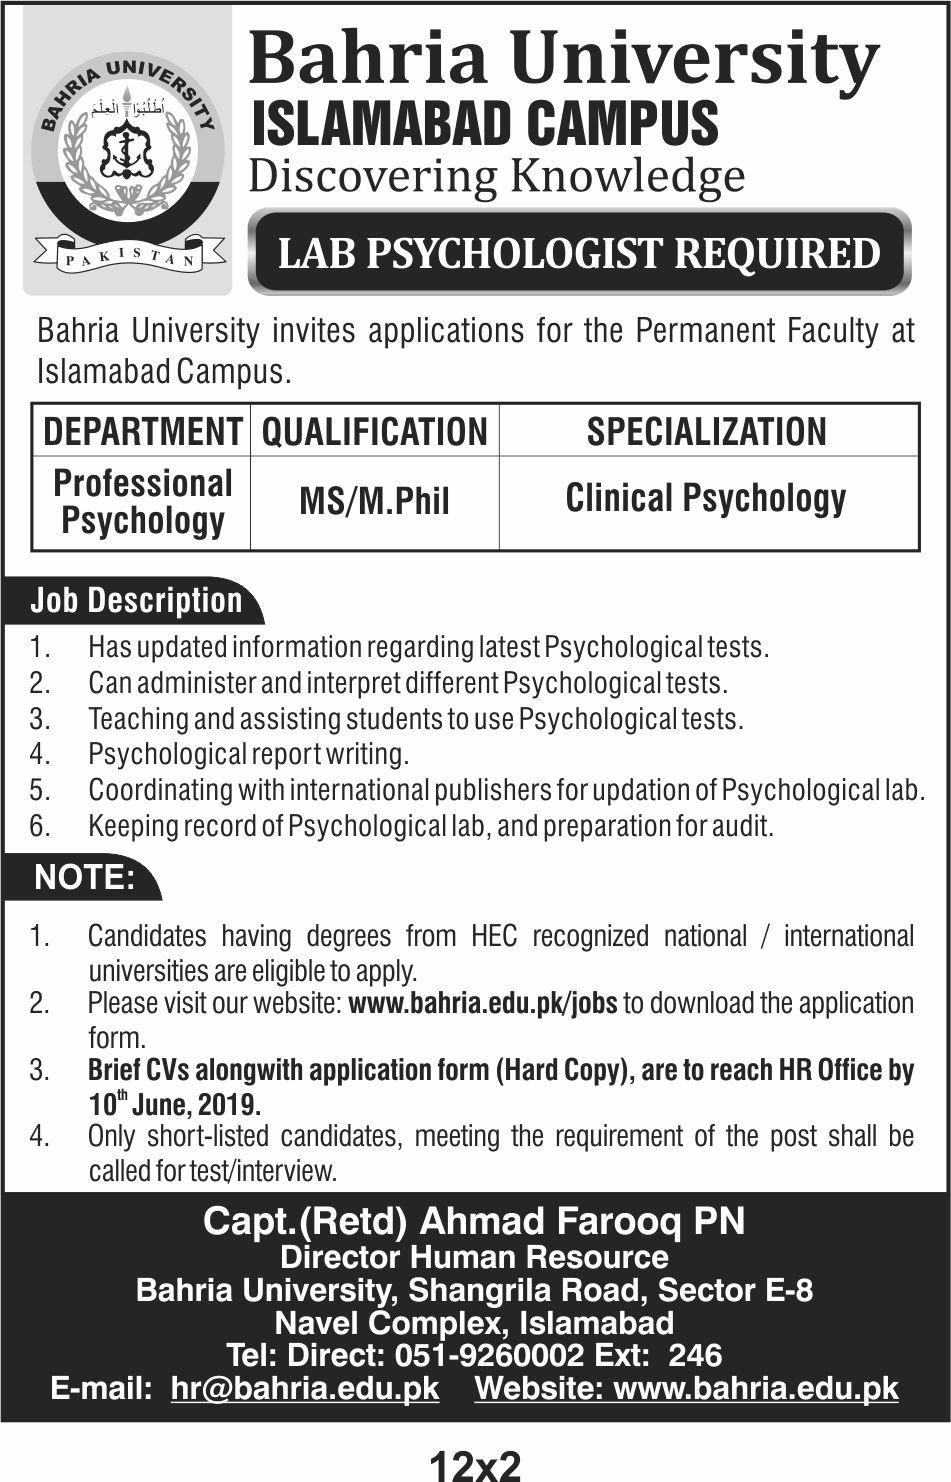 Situation Vacant: Faculty Required at BU Islamabad Campus